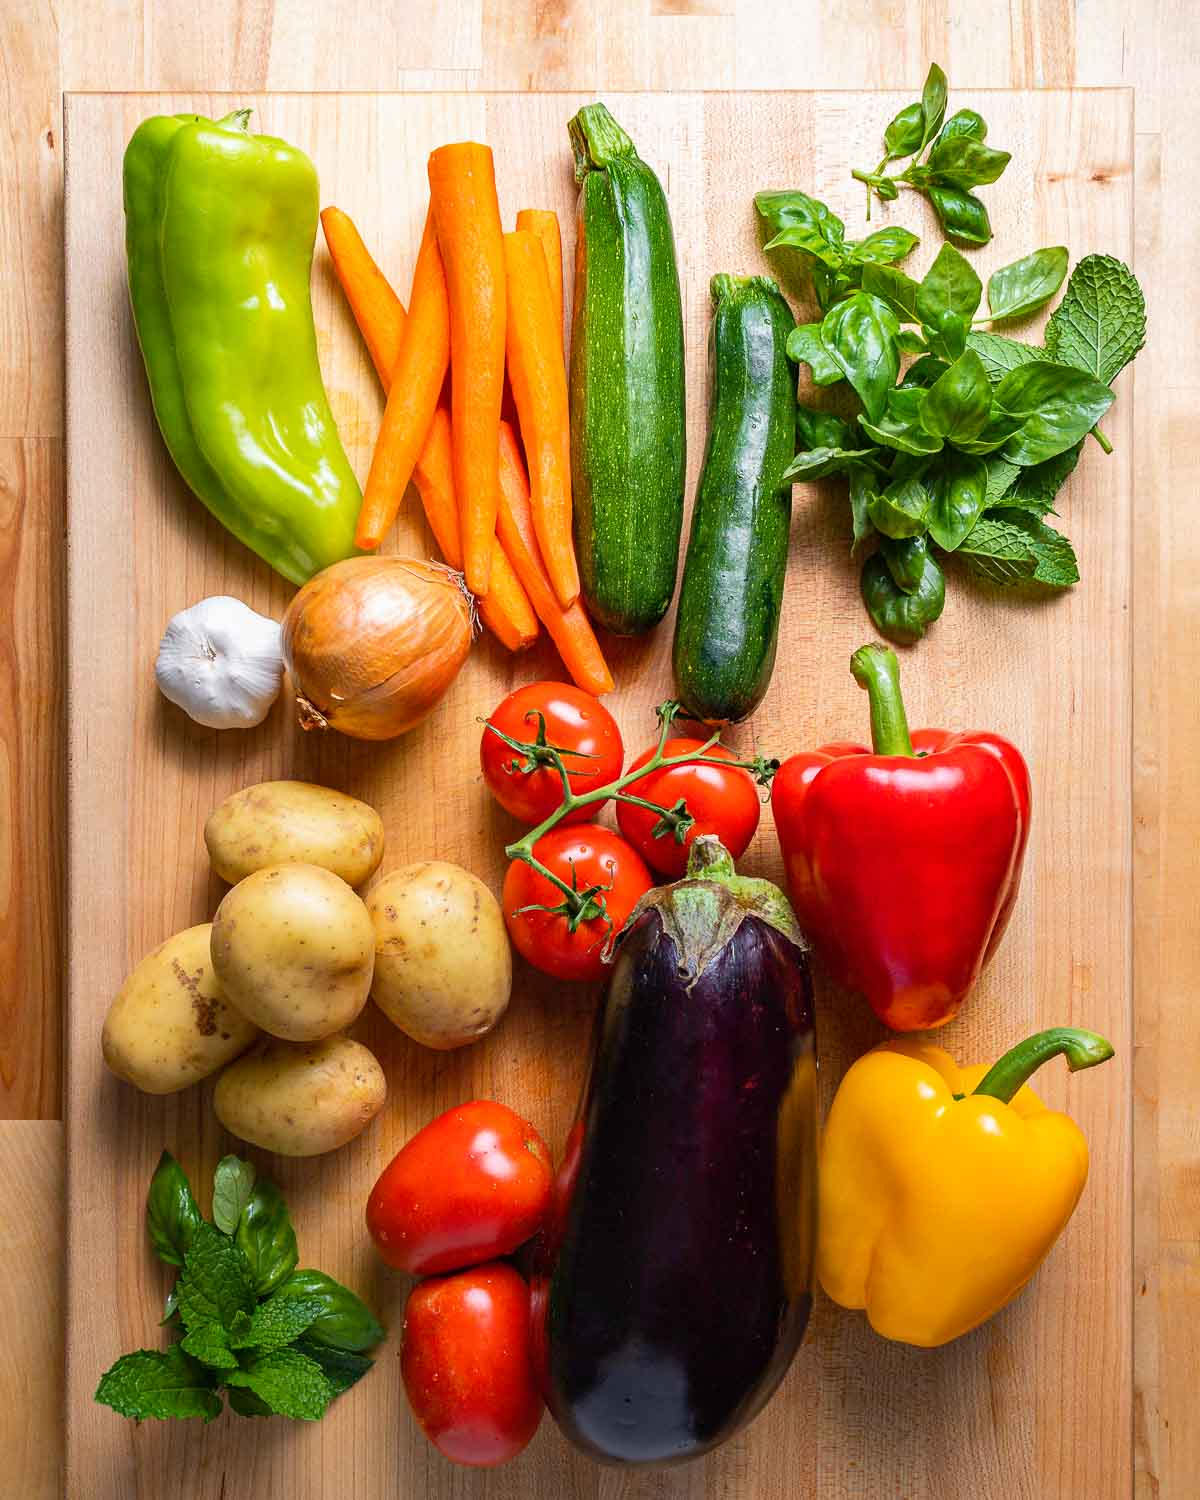 Vegetables shown: Peppers, carrots, zucchini, herbs, potatoes, tomatoes, eggplant, garlic, and onion.